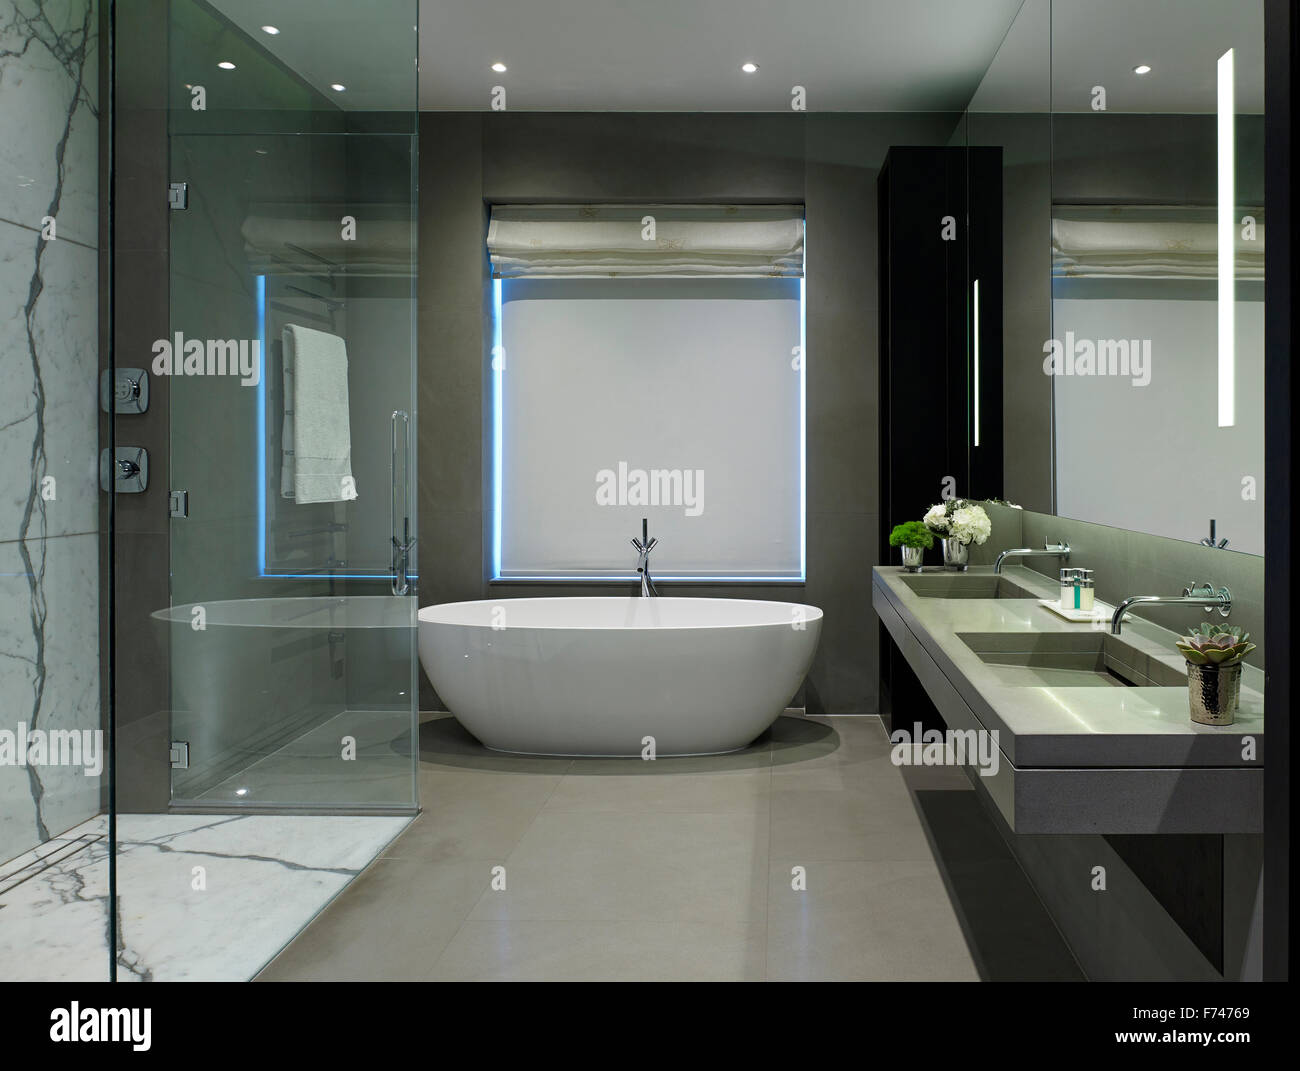 Shower cubicle and bath with double basin in Chelsea Apartment, London, England, UK - Stock Image